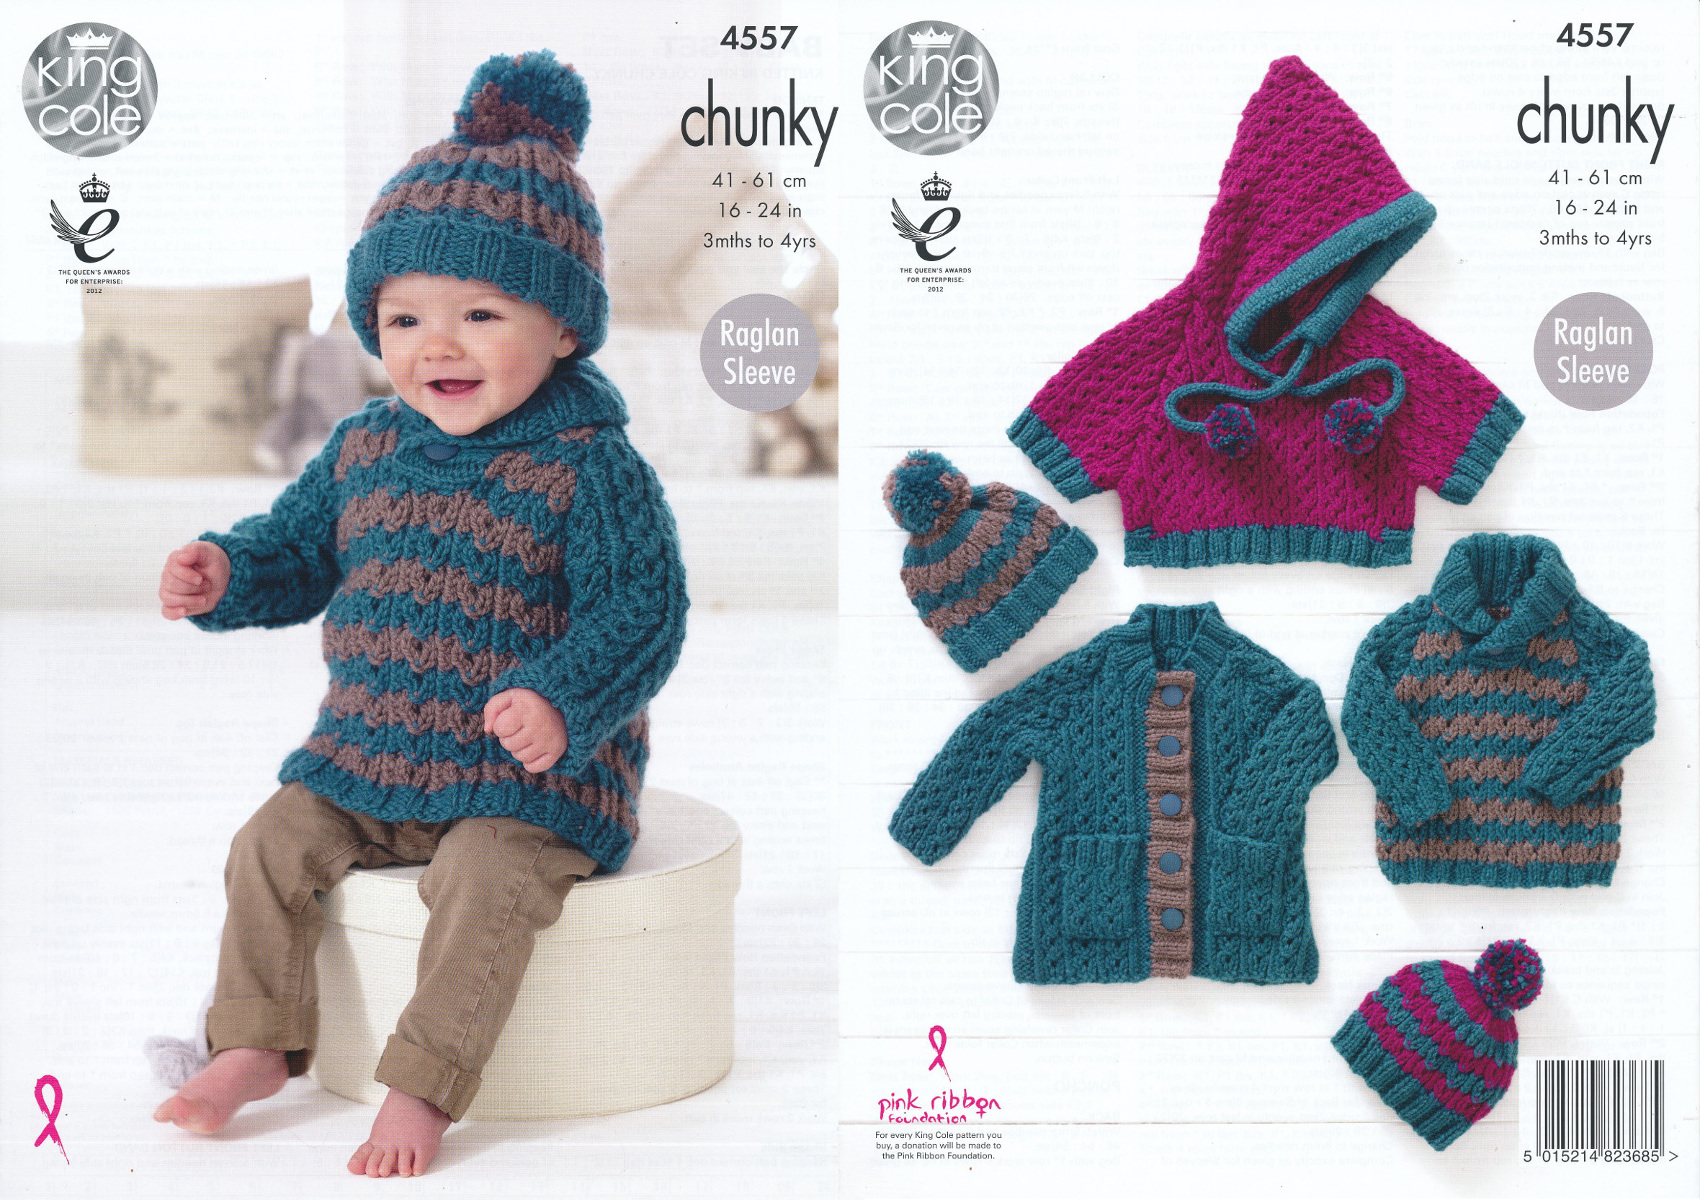 Poncho Jacket Knitting Pattern : Chunky Knit Knitting Pattern King Cole Baby Coat Jumper Poncho & Hat Set ...